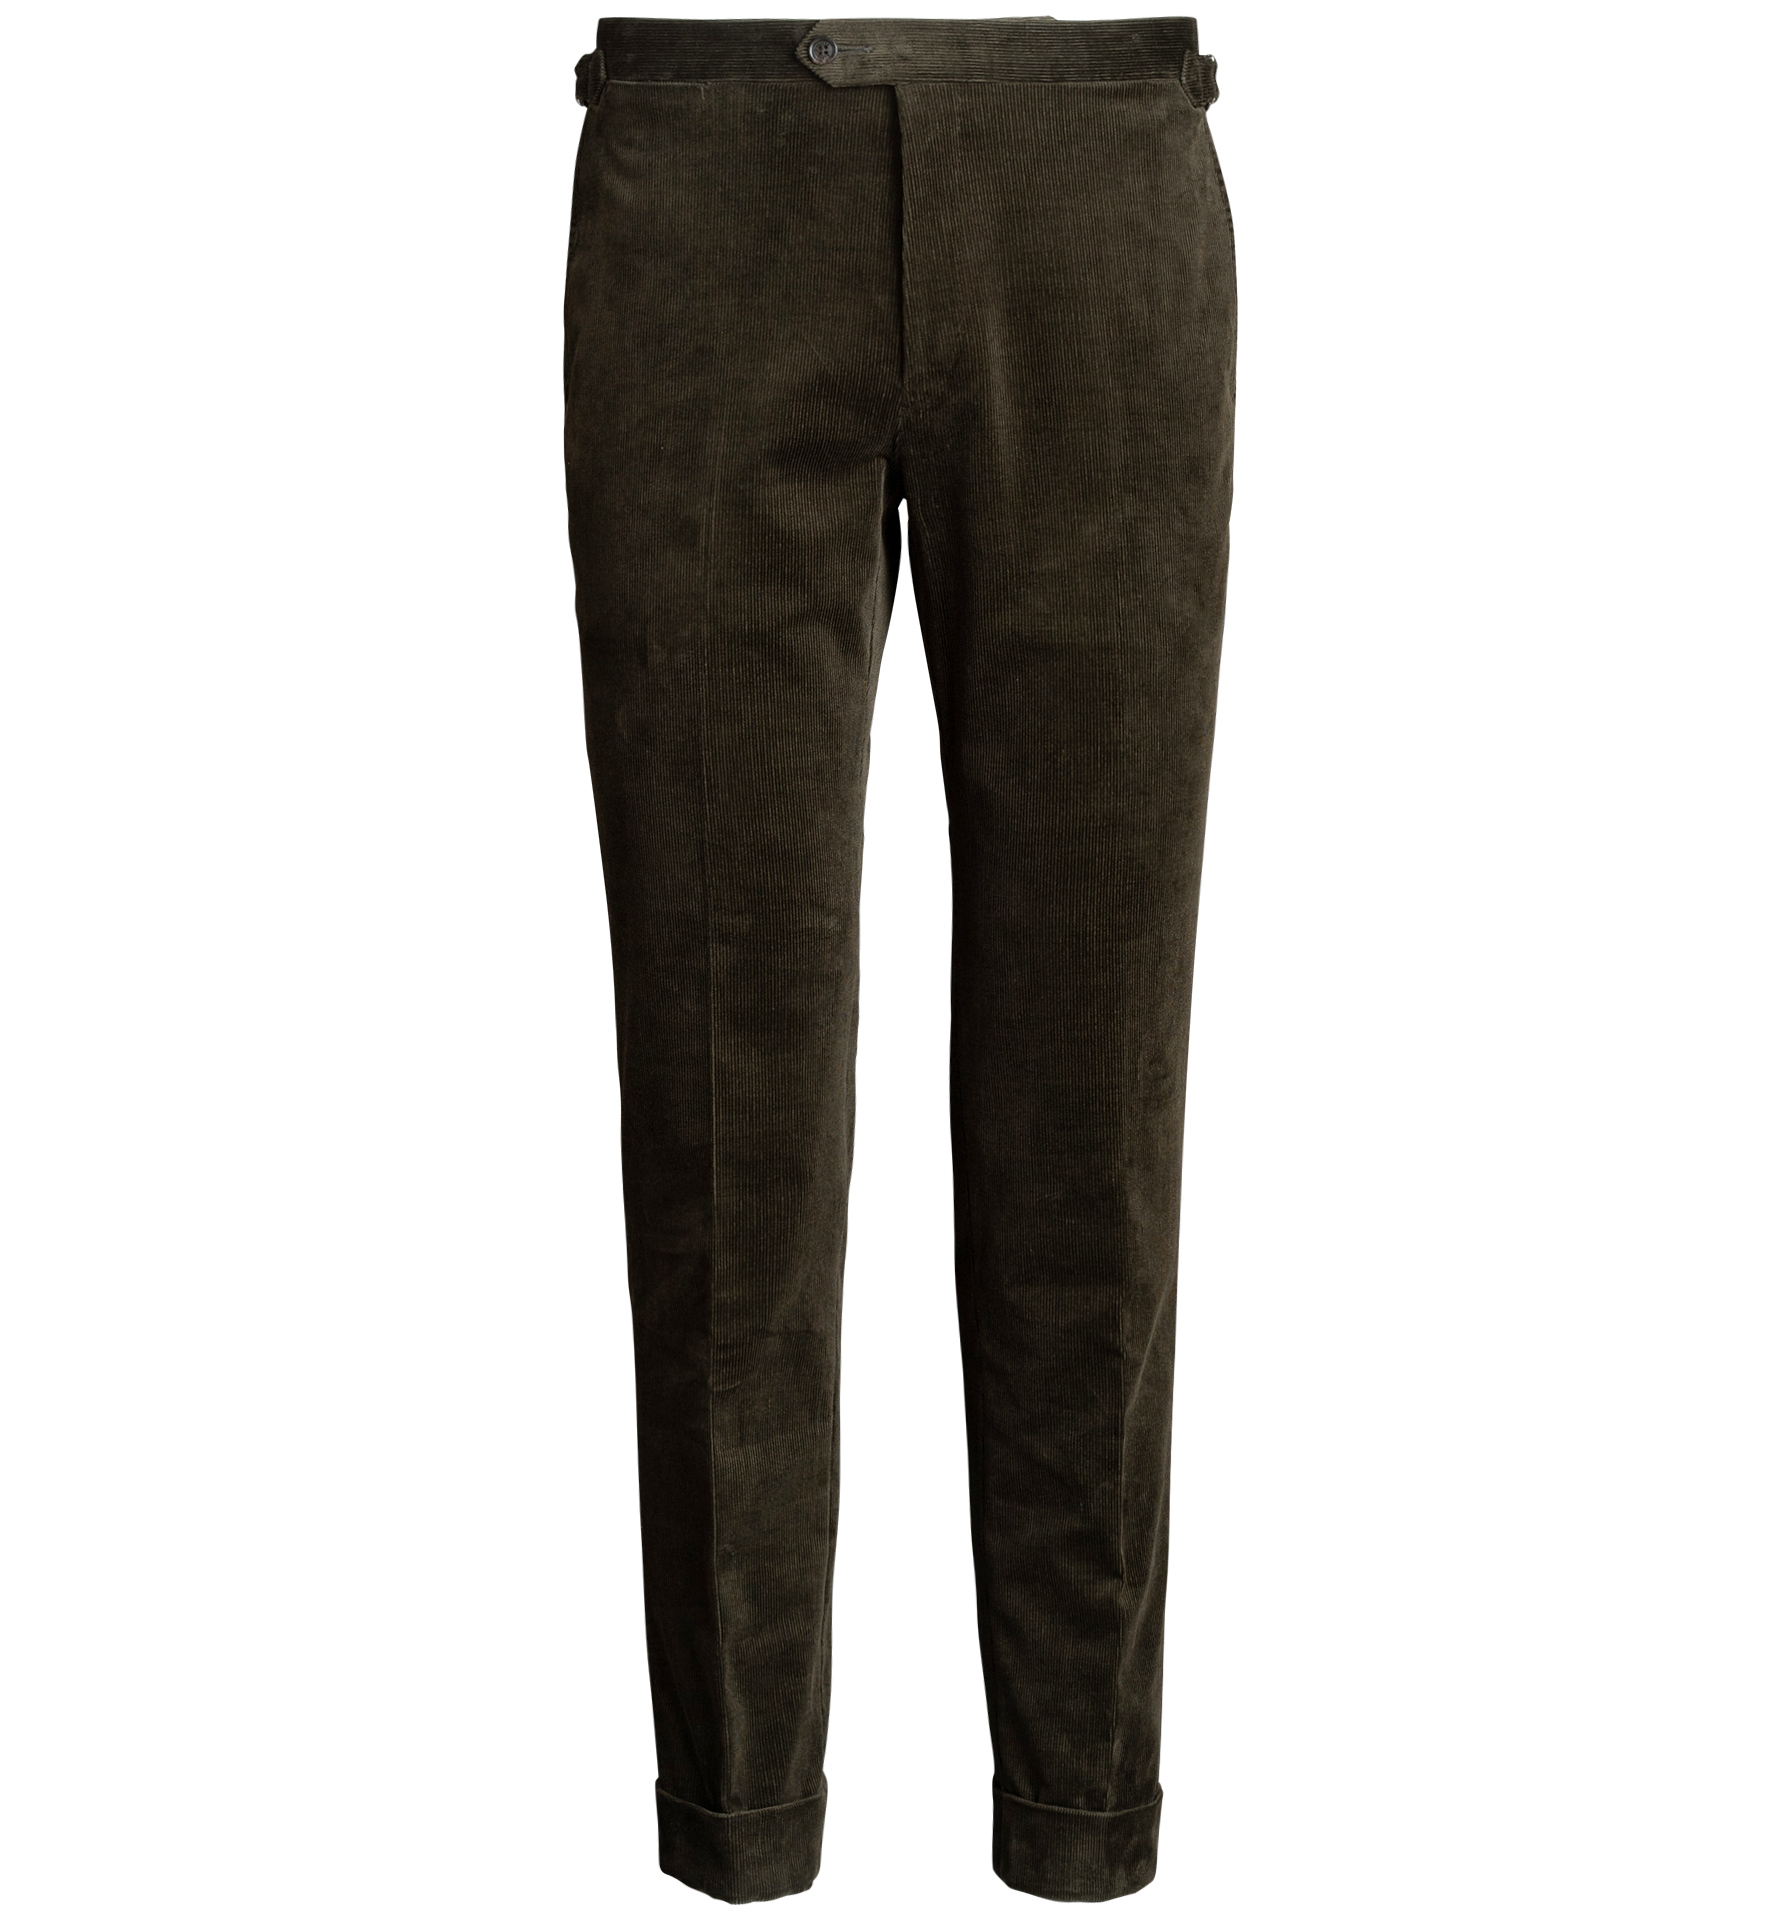 Zoom Image of Allen Pine Stretch Corduroy Trousers